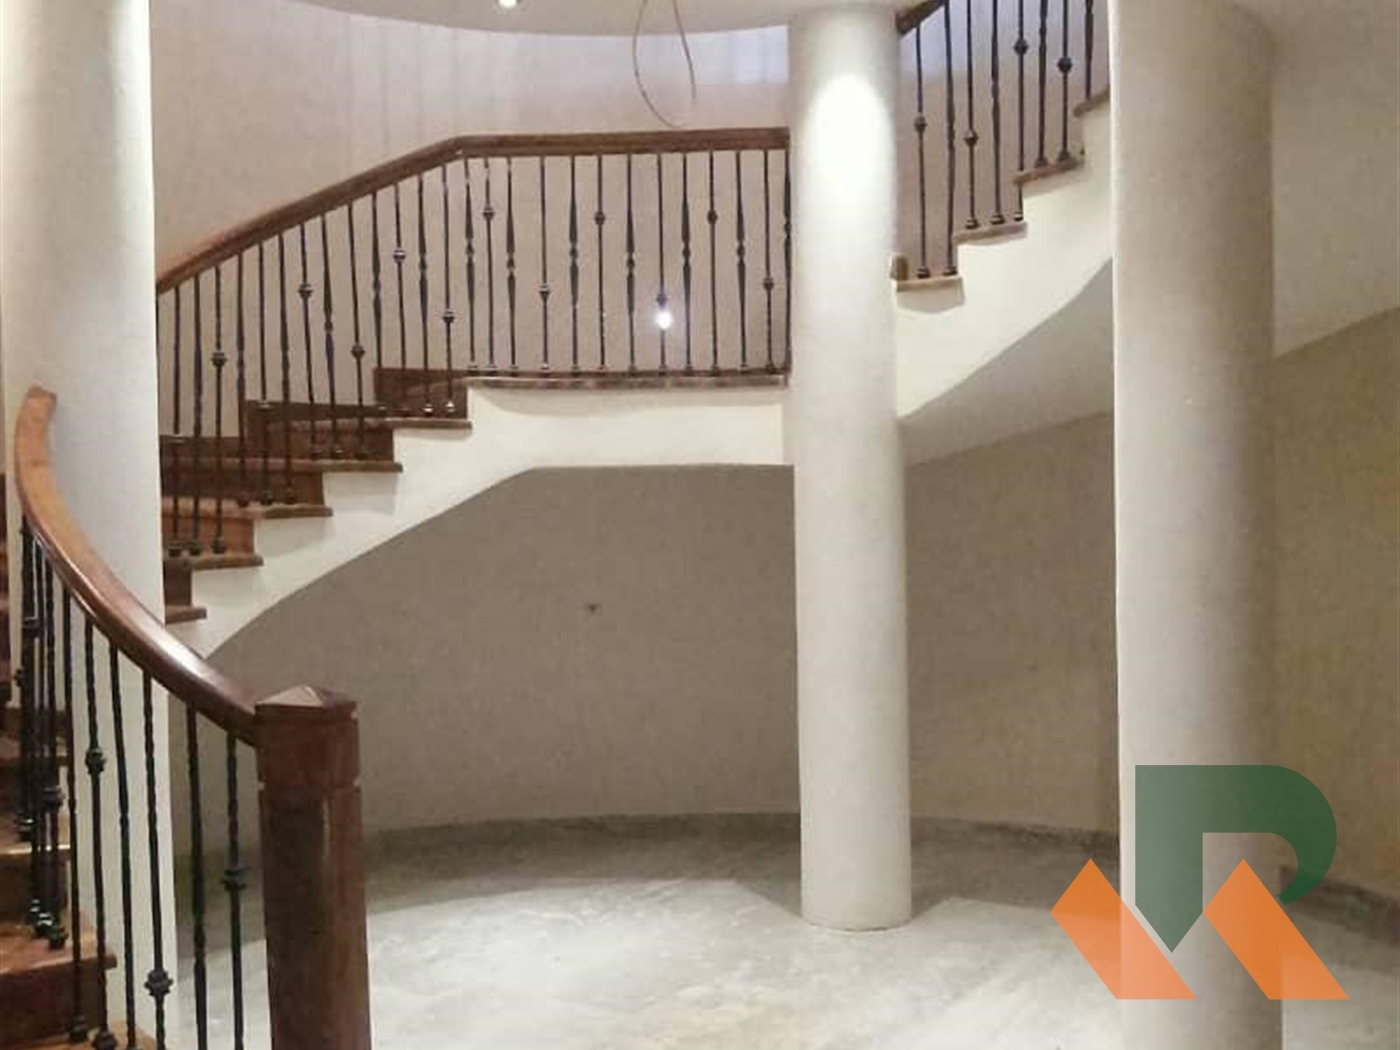 Storyed house for sale in Mutungo Kampala